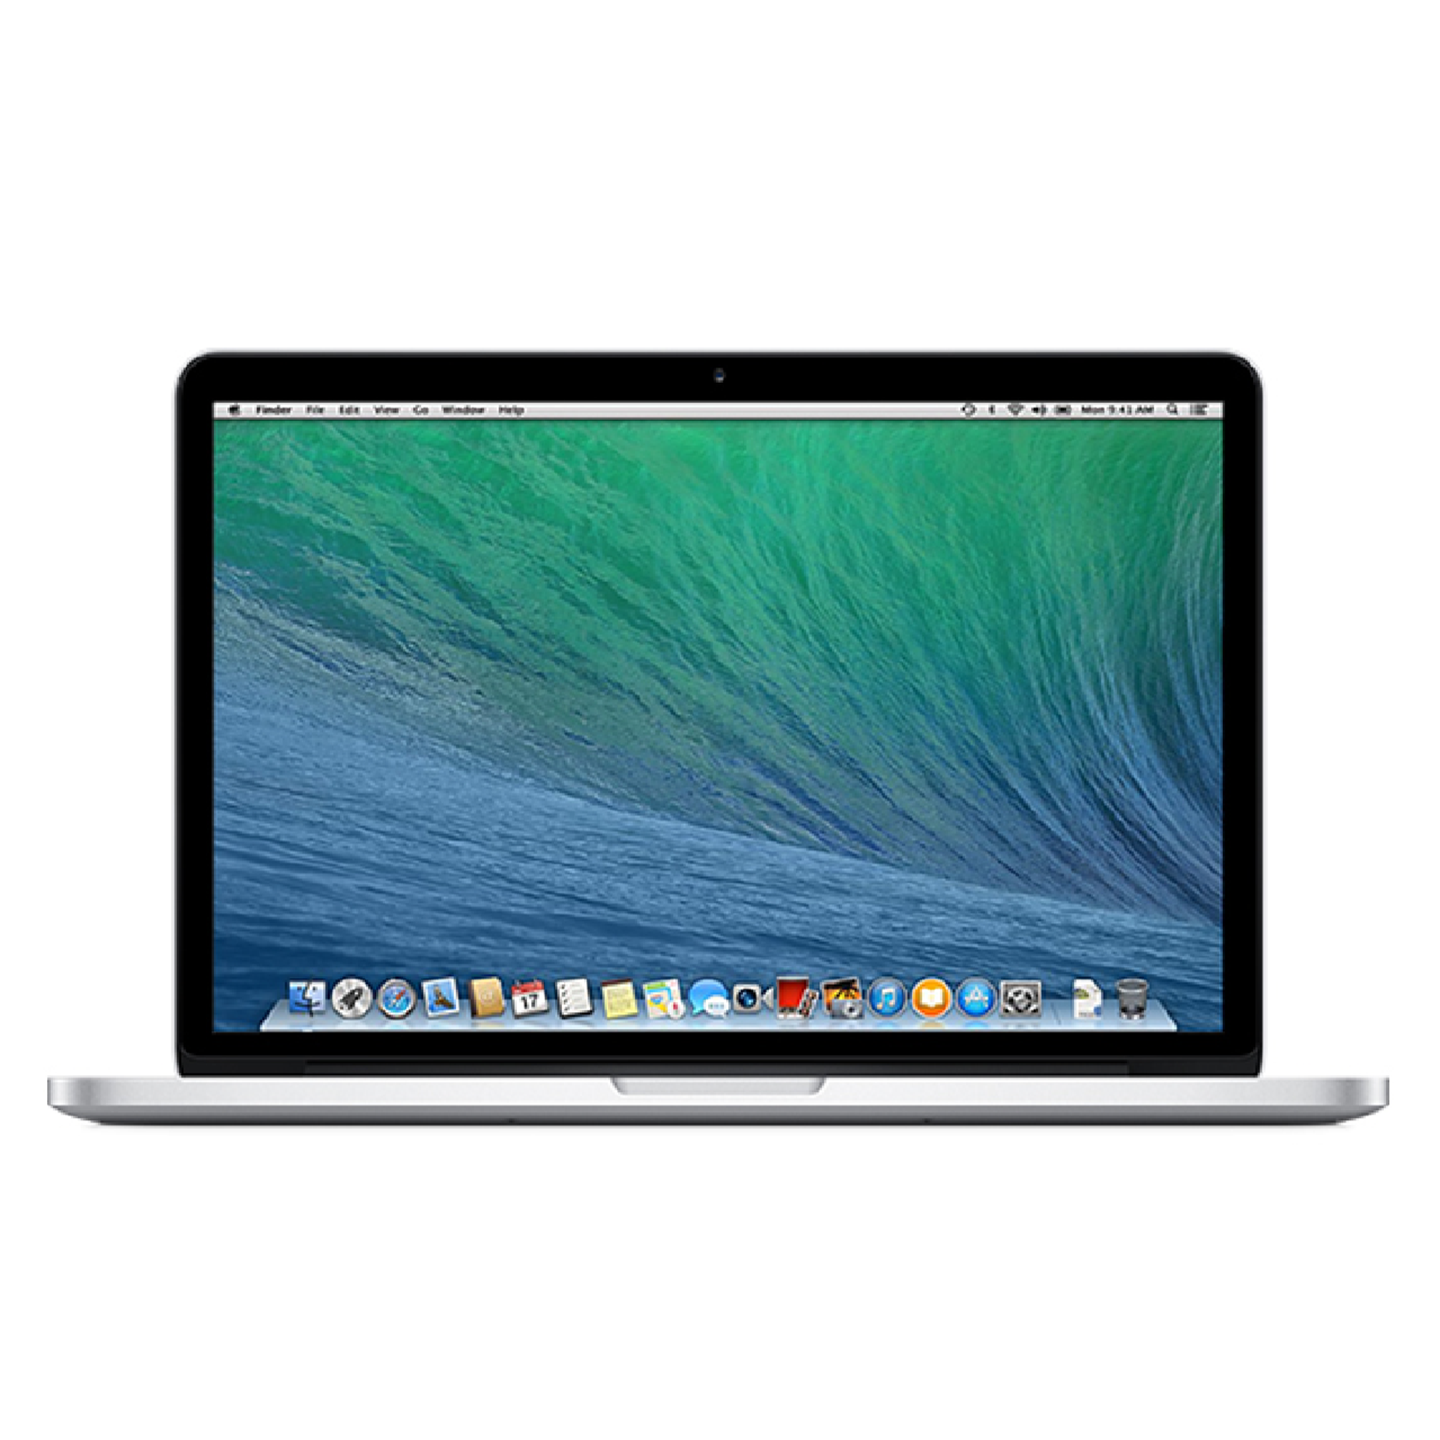 MacBook Pro (Retina, 13-inch, Late 2013)Core i5/8GB/SSD256GB E772